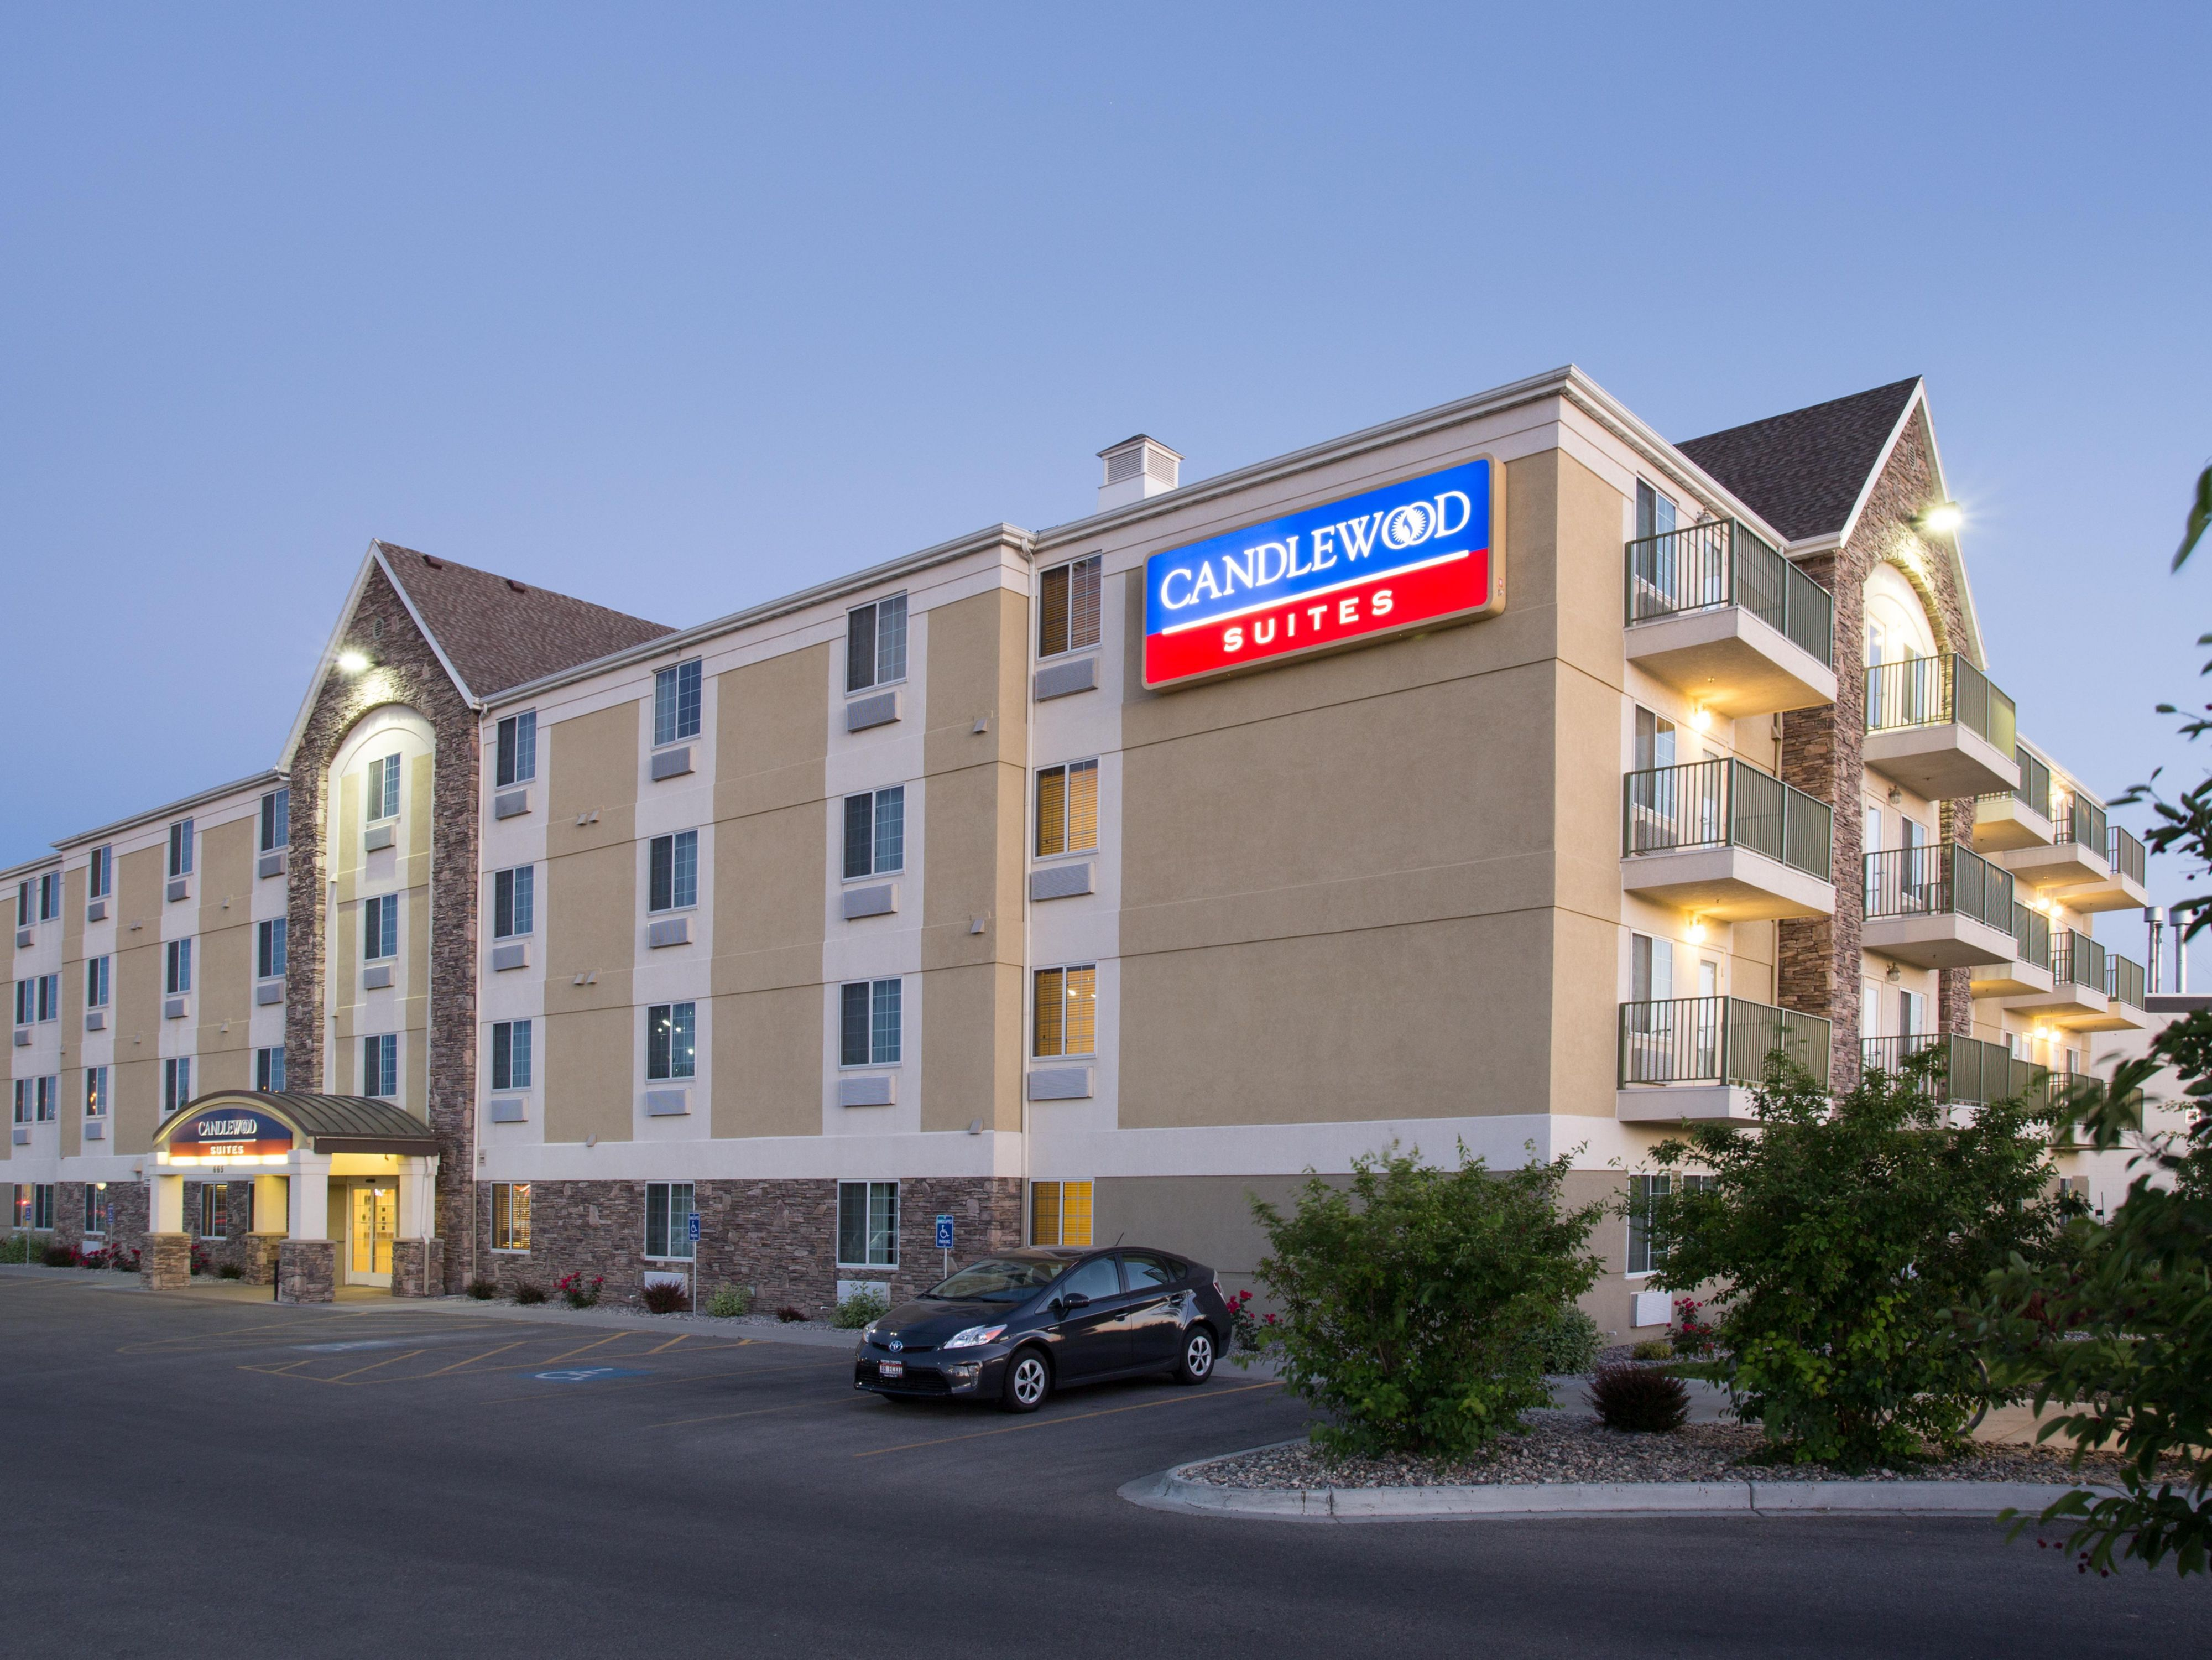 Idaho Falls Hotels Candlewood Suites Extended Stay Hotel In Id